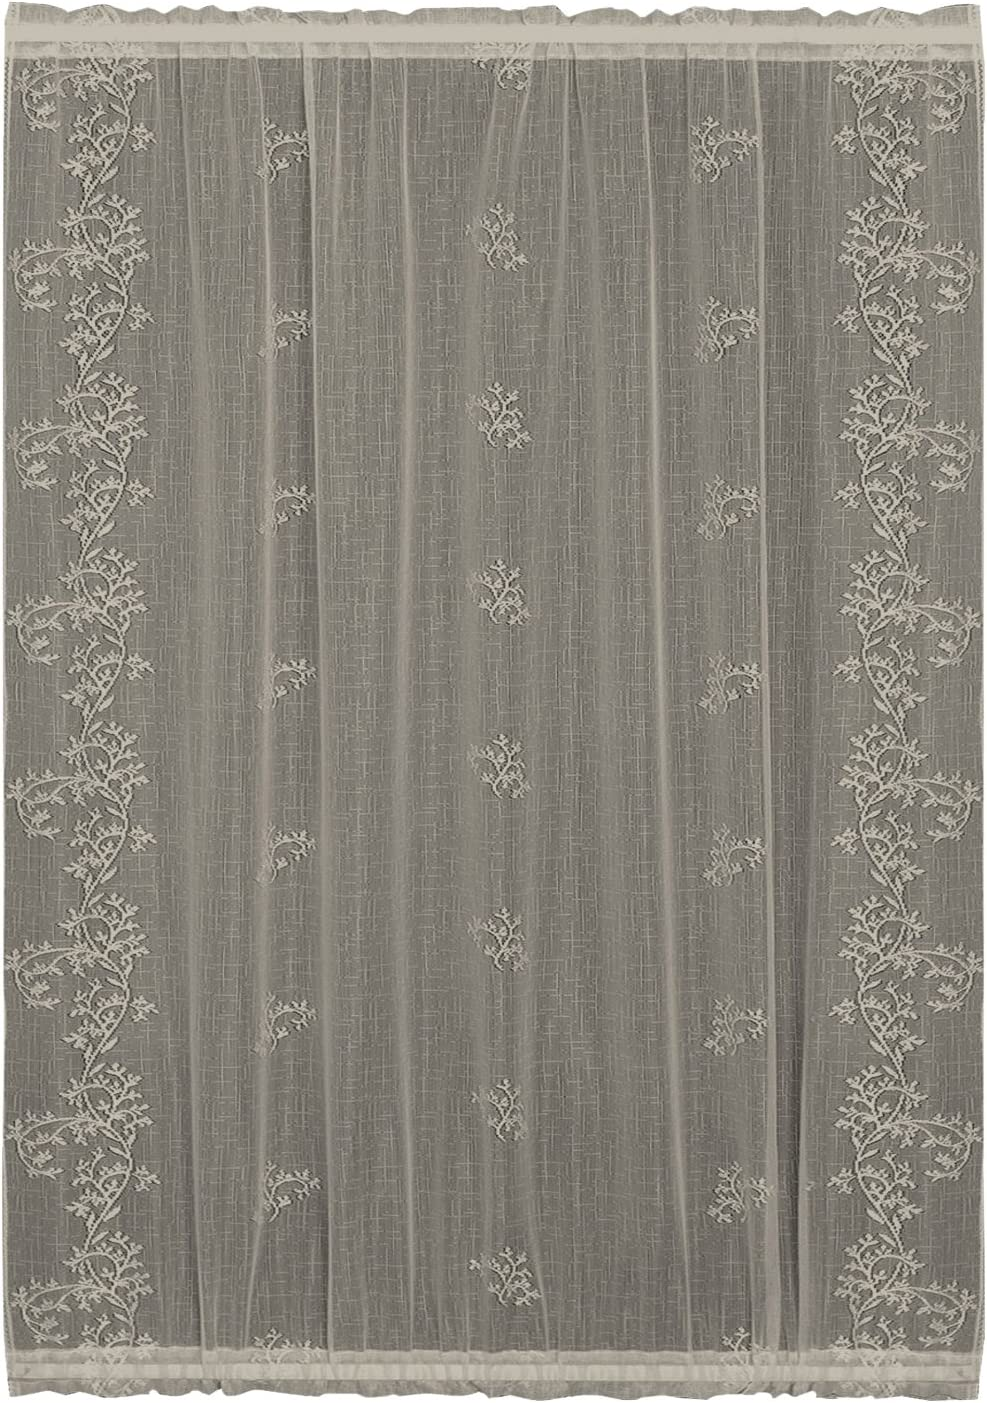 Heritage Lace Sheer Divine Valance, 60 by 16-Inch, Flax